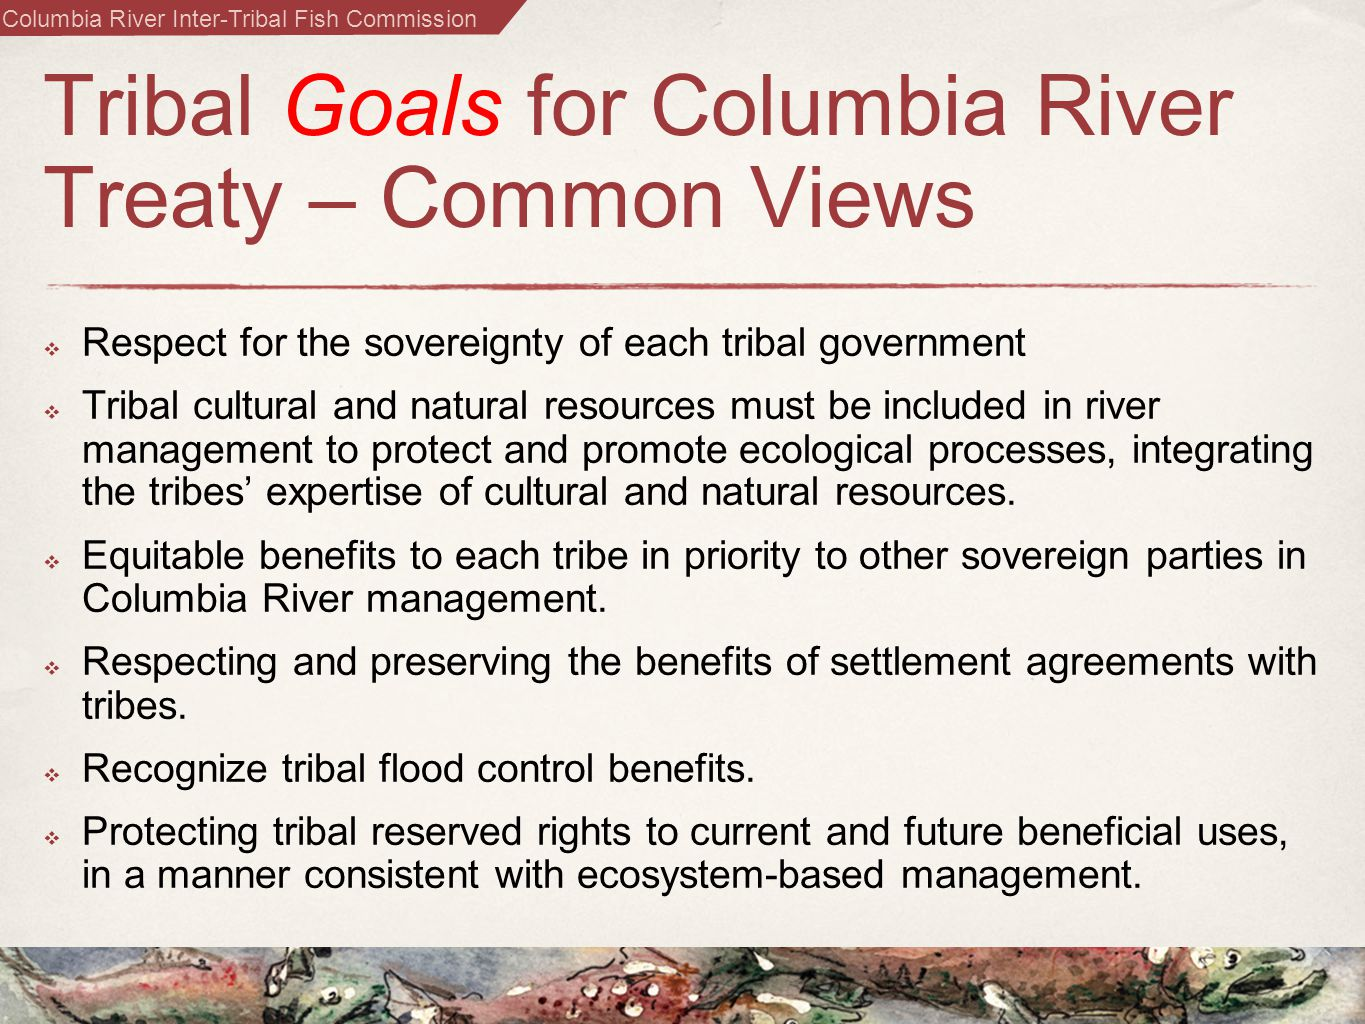 Columbia River Inter-Tribal Fish Commission Tribal Goals for Columbia River Treaty – Common Views  Respect for the sovereignty of each tribal government  Tribal cultural and natural resources must be included in river management to protect and promote ecological processes, integrating the tribes' expertise of cultural and natural resources.